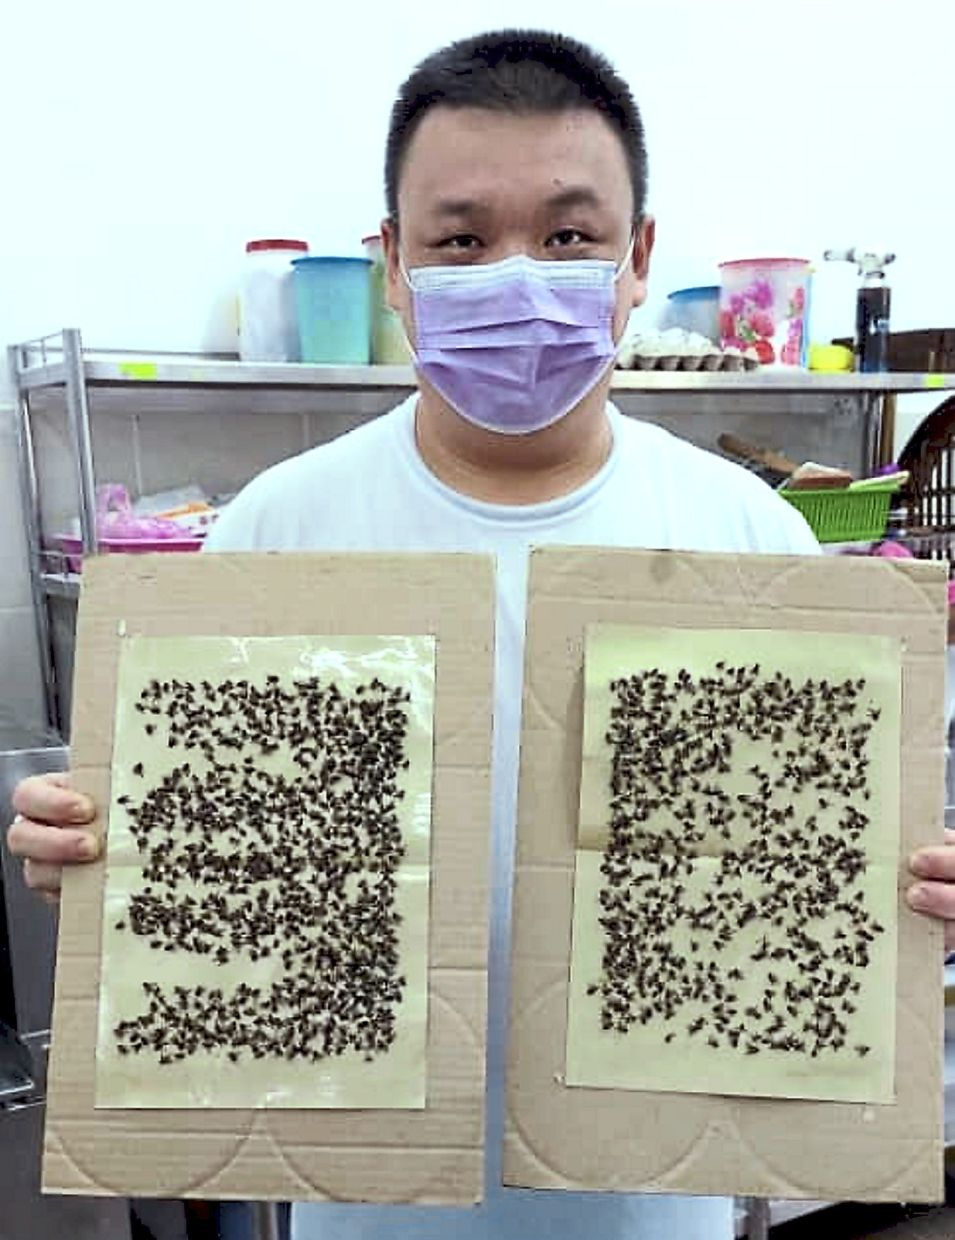 Chong says his customers always complain about the flies at his coffeeshop despite his efforts to keep the pests away.